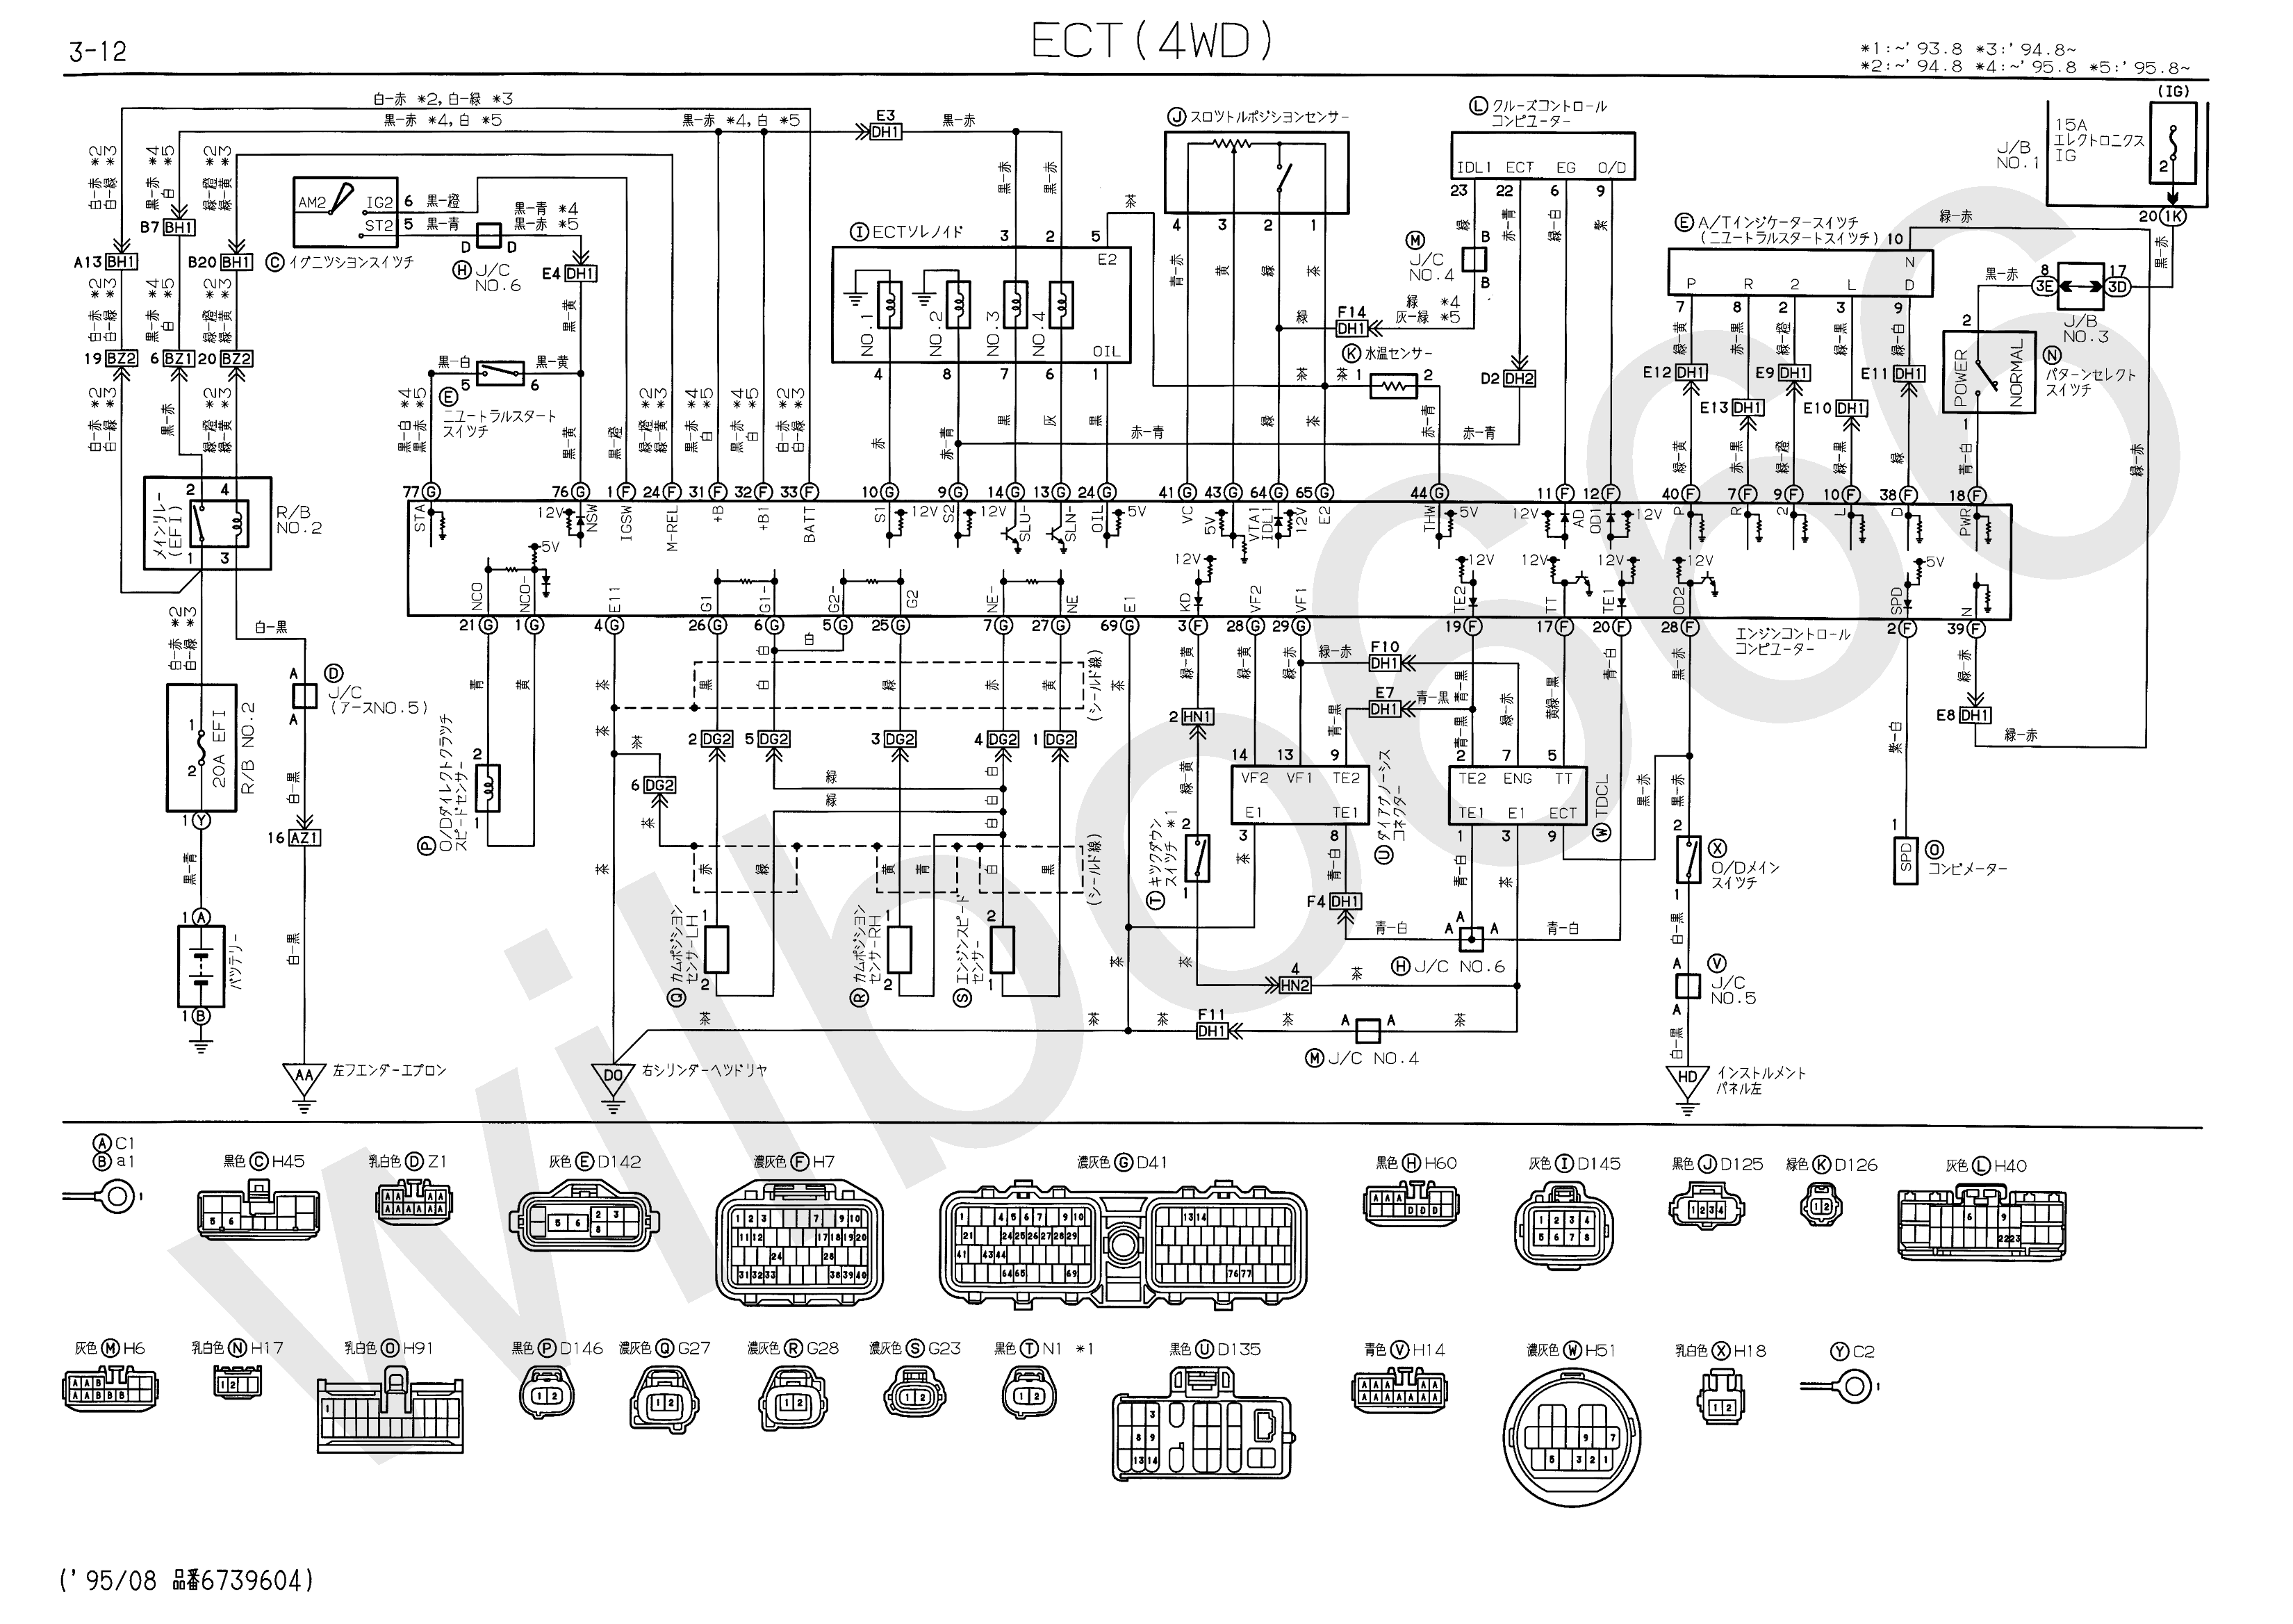 s13 wiper motor wiring diagram with S14 Sr20det Wiring Diagram 95 240sx on S14 Sr20det Wiring Diagram 95 240sx together with Nissan Tino Wiring Diagram Nissan additionally S13 Headlight Wiring Motors as well Tlc Engine Diagram moreover Audi A3 Wiper Wiring Diagram.